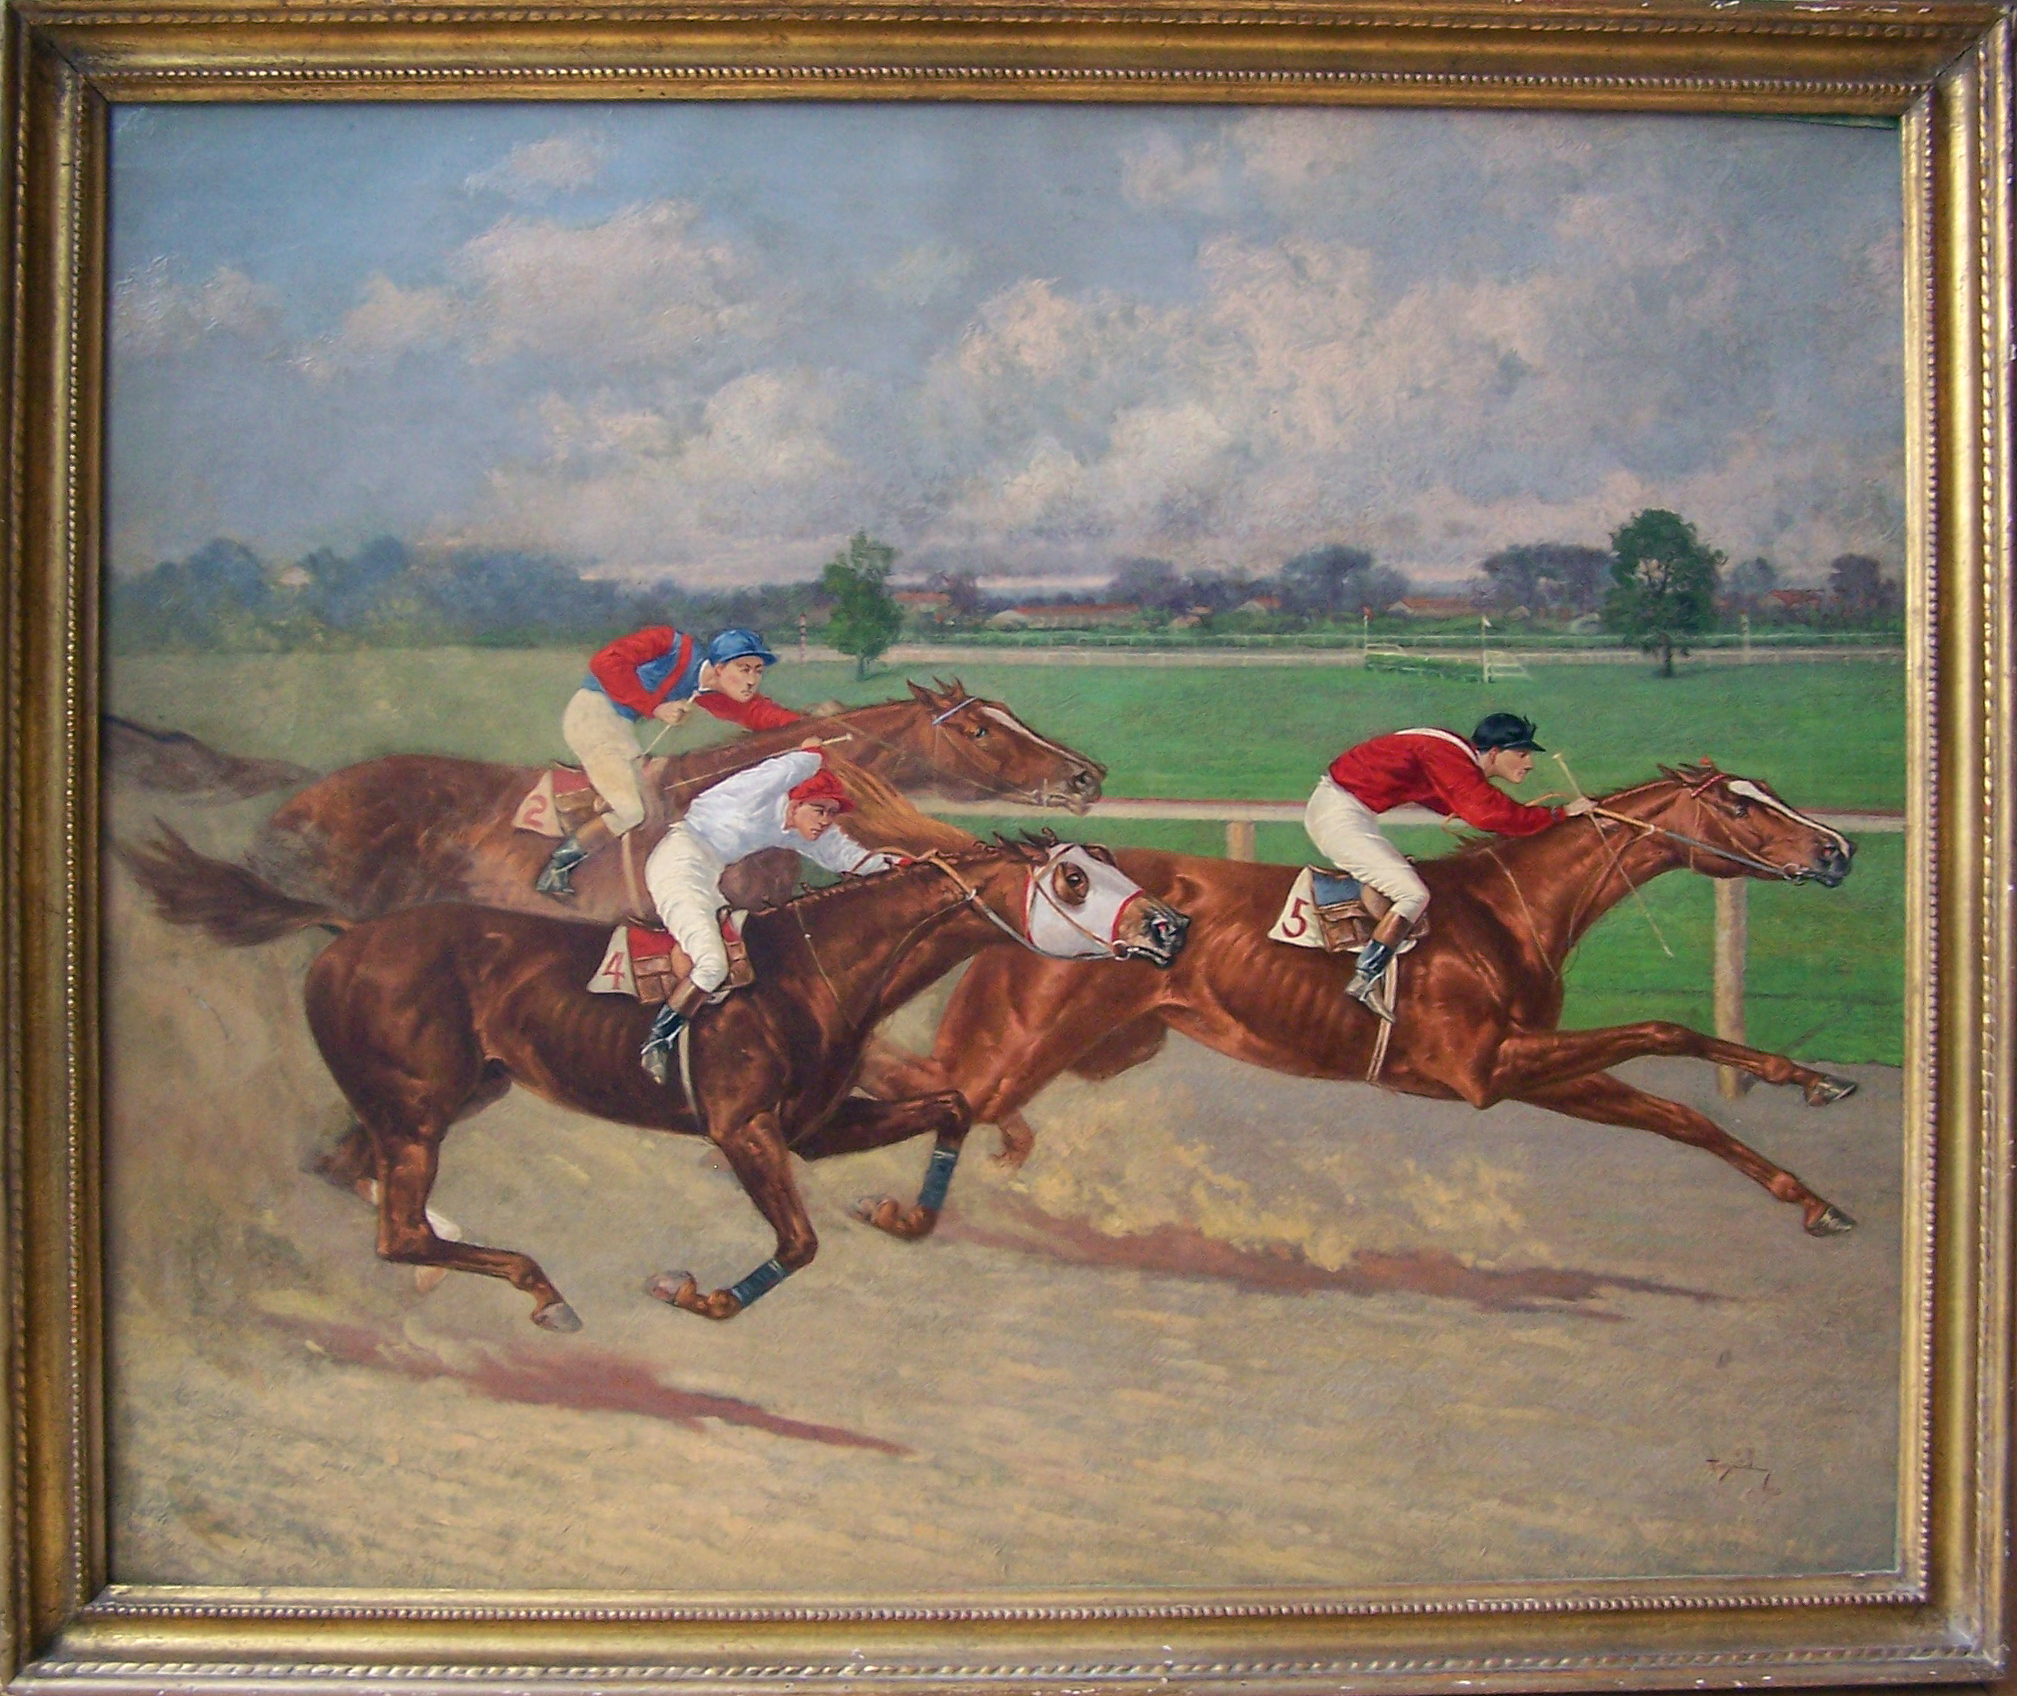 1996.2.1: Finish of the White Plains Handicap, Henry Stull (1851-1913), Oil on canvas, 1903, Museum Purchase